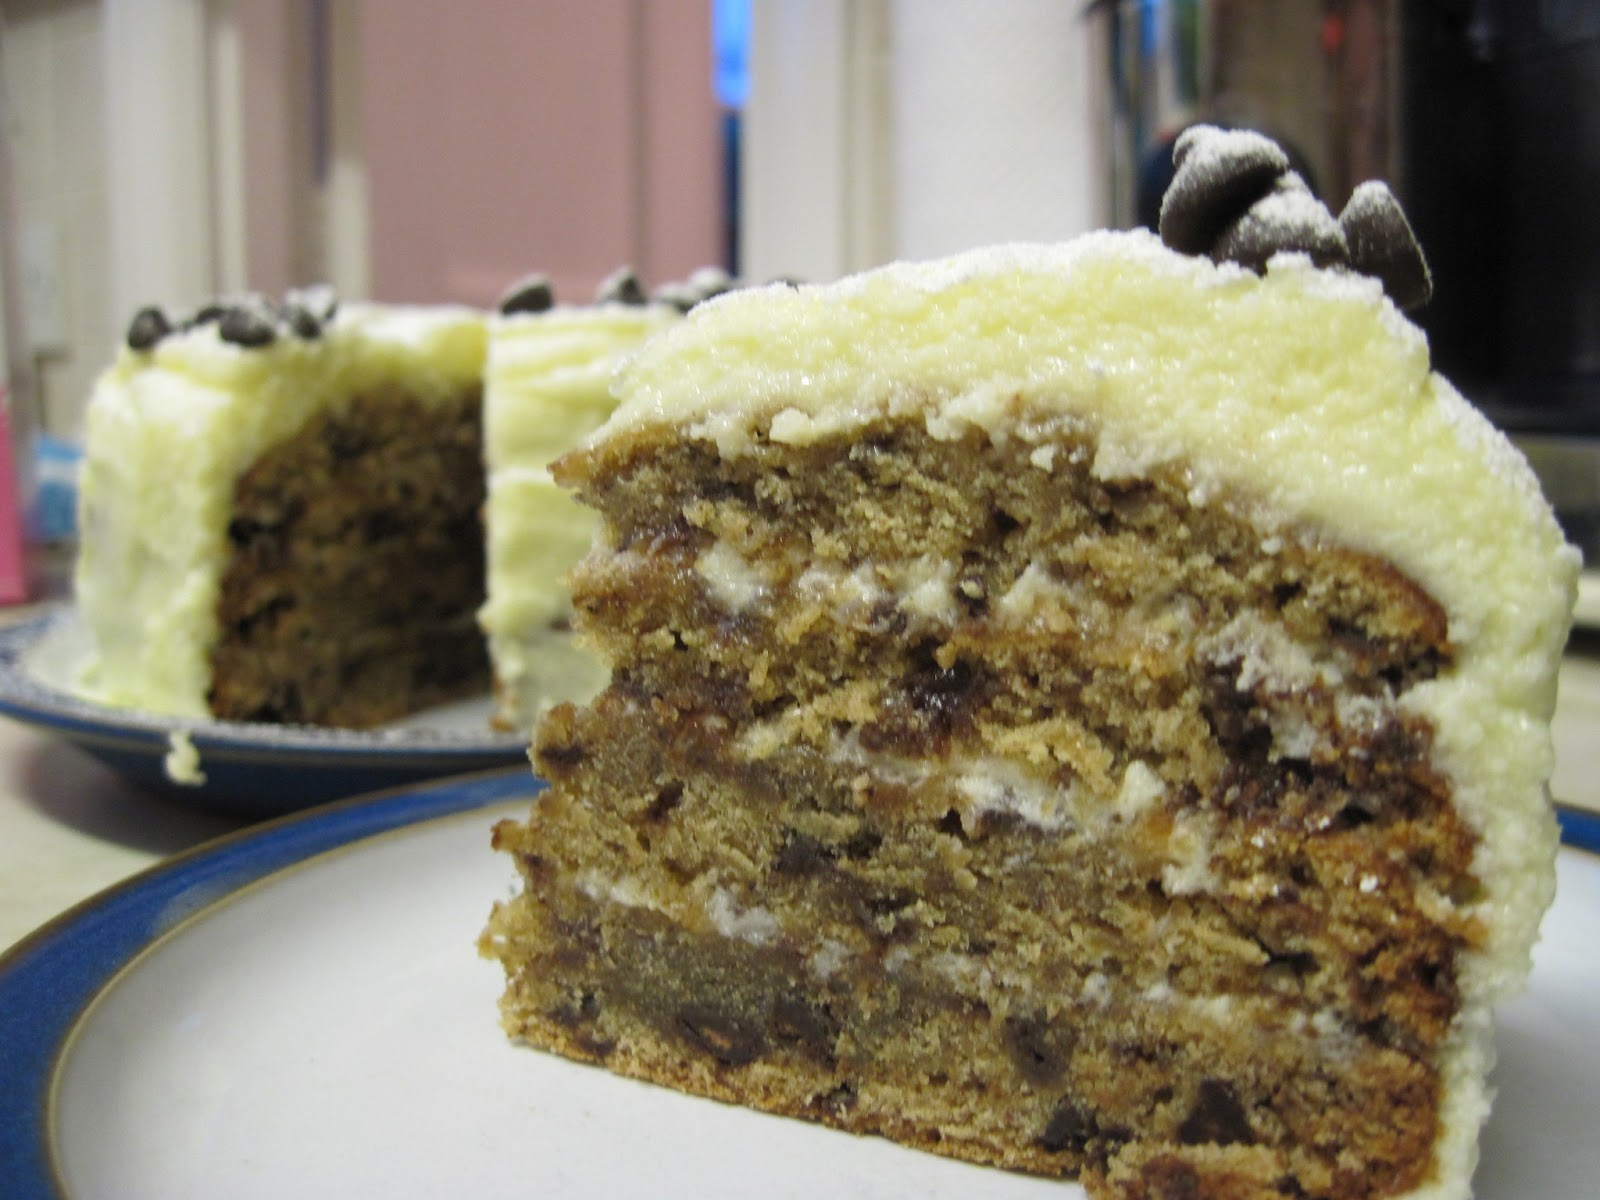 Images Of Chocolate Chip Cake : The Sugar Lump: Chocolate Chip Banana Cake